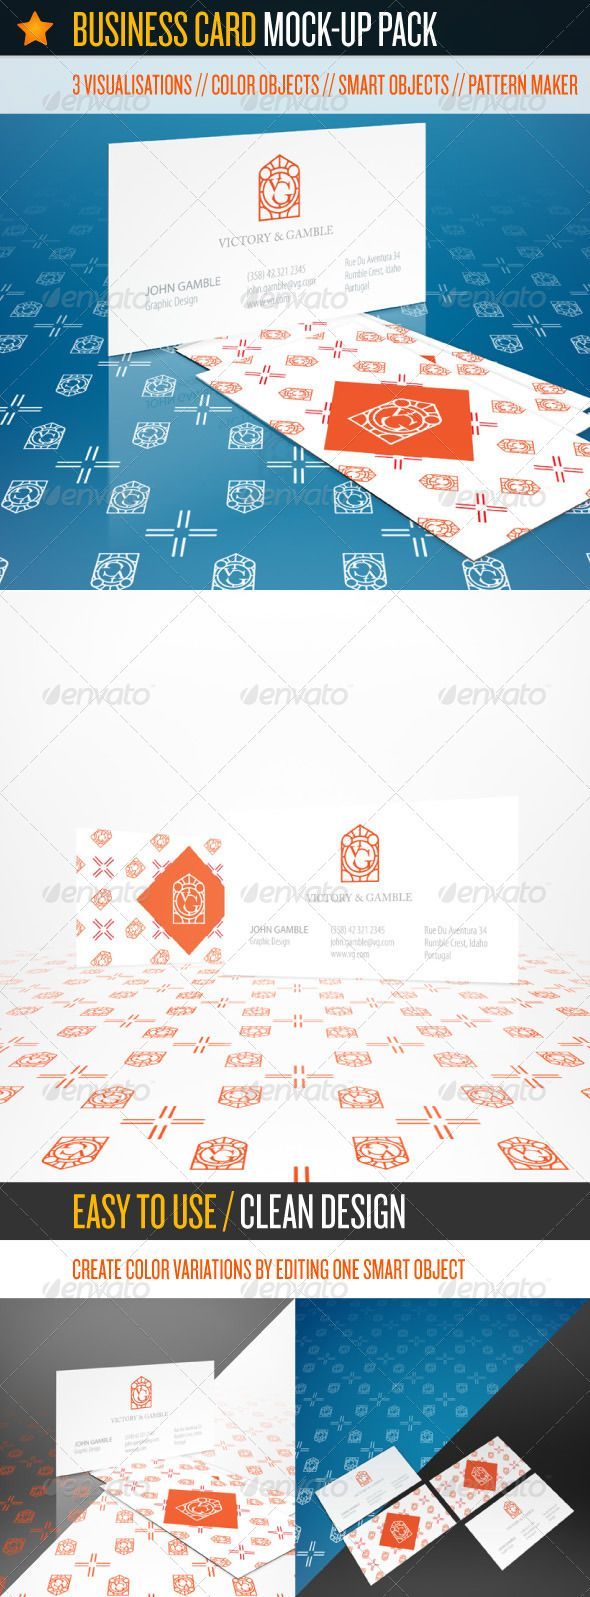 Realistic Graphic DOWNLOAD (.ai, .psd) :: http://jquery-css.de/pinterest-itmid-1000686560i.html ... Business Card Mock-up Pack ...  black, business card, clean, high quality, mock-up, professional, shiny  ... Realistic Photo Graphic Print Obejct Business Web Elements Illustration Design Templates ... DOWNLOAD :: http://jquery-css.de/pinterest-itmid-1000686560i.html